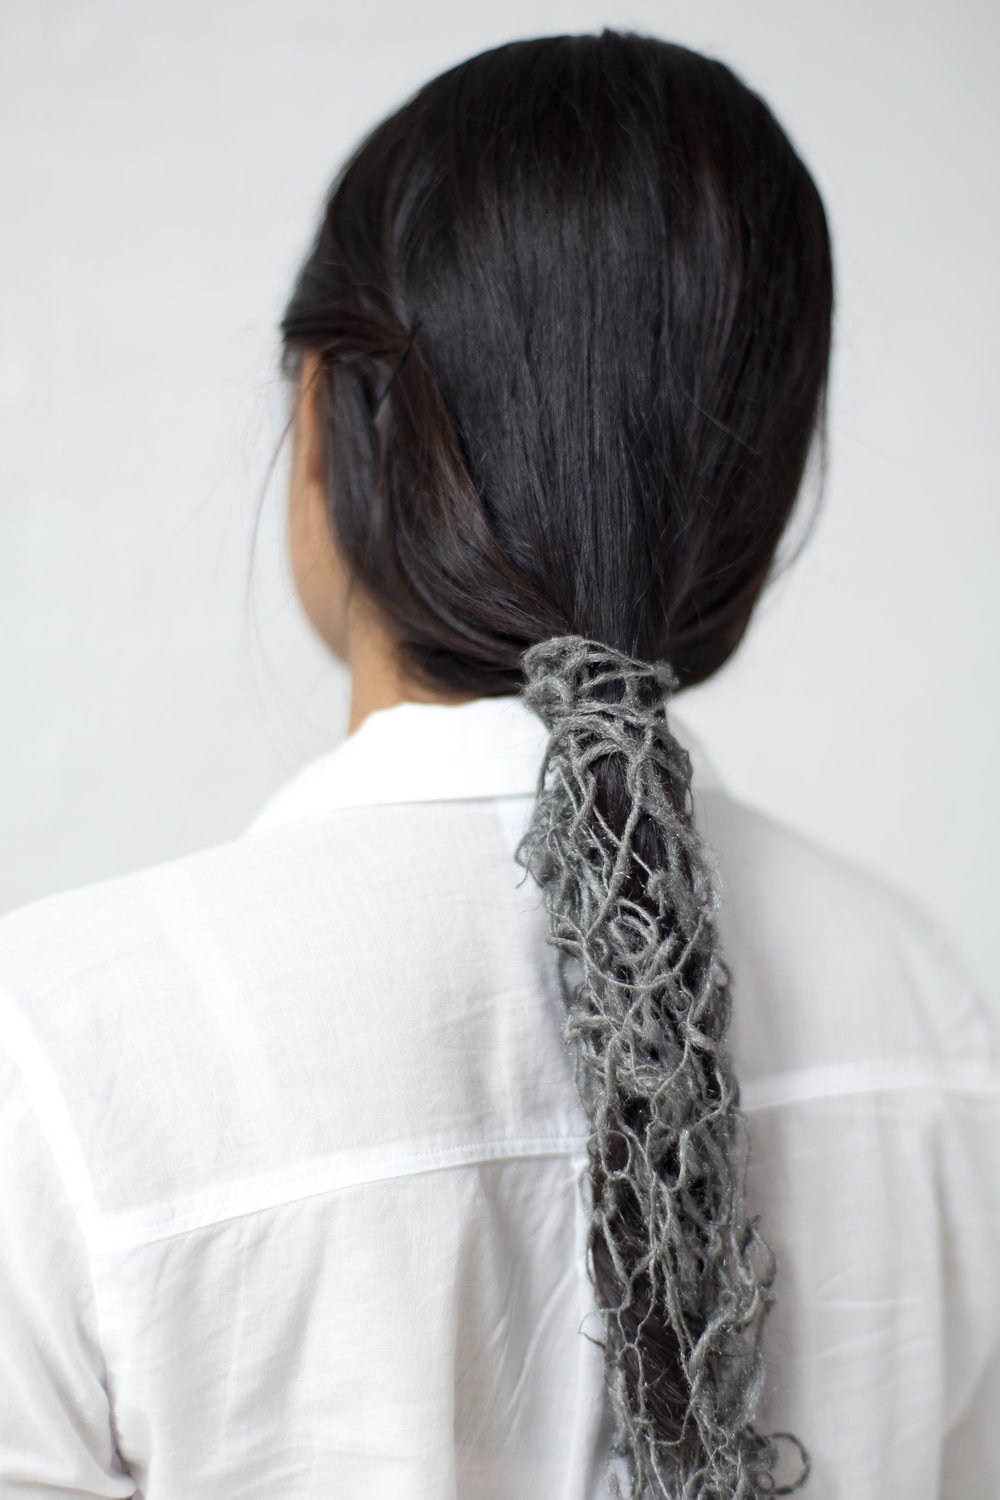 Hand-spun steel wool wrapped around Swati Kapur's hair